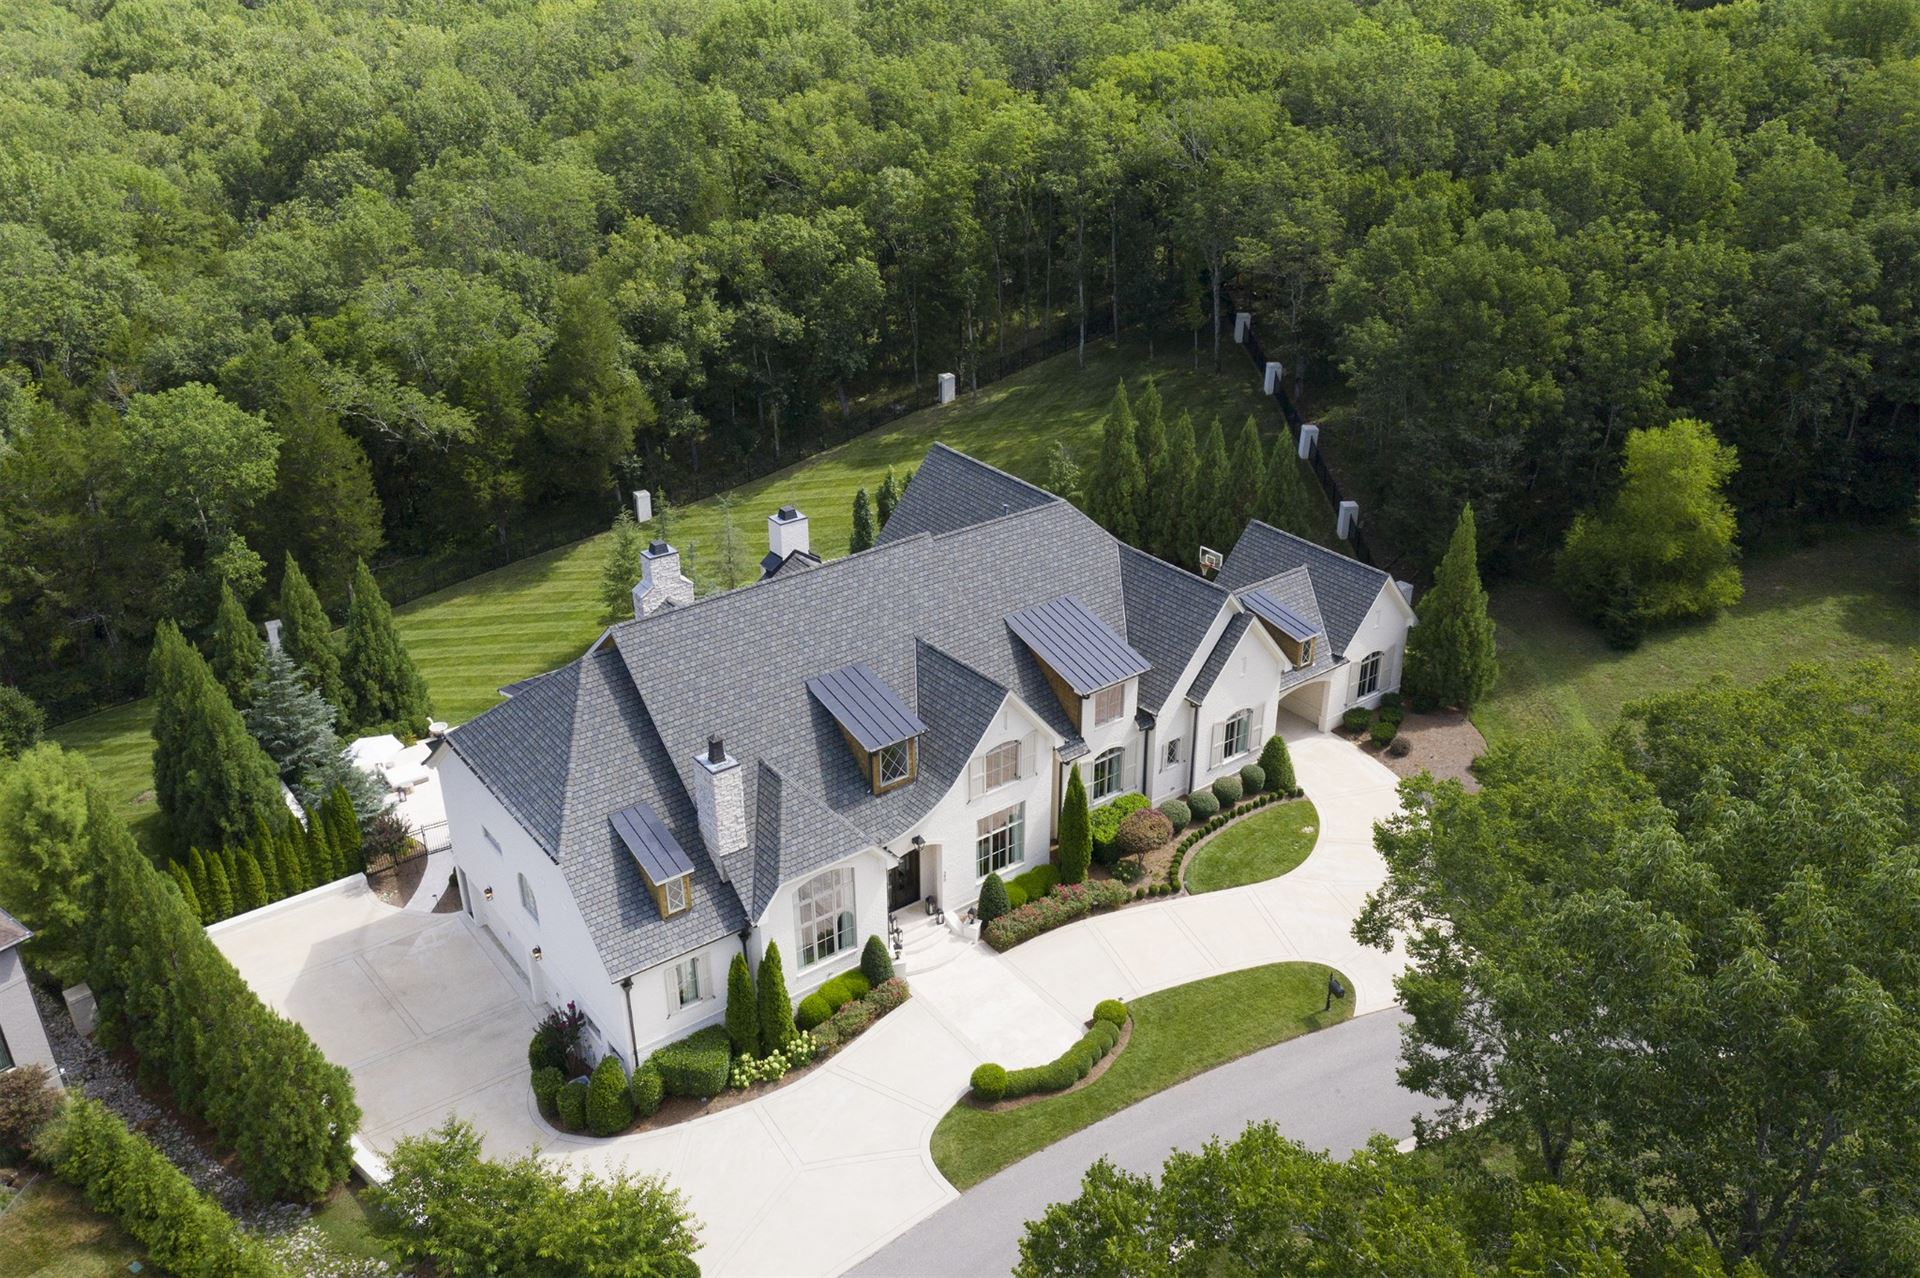 Photo of 390 Lady of the Lake Ln, Franklin, TN 37067 (MLS # 2273911)